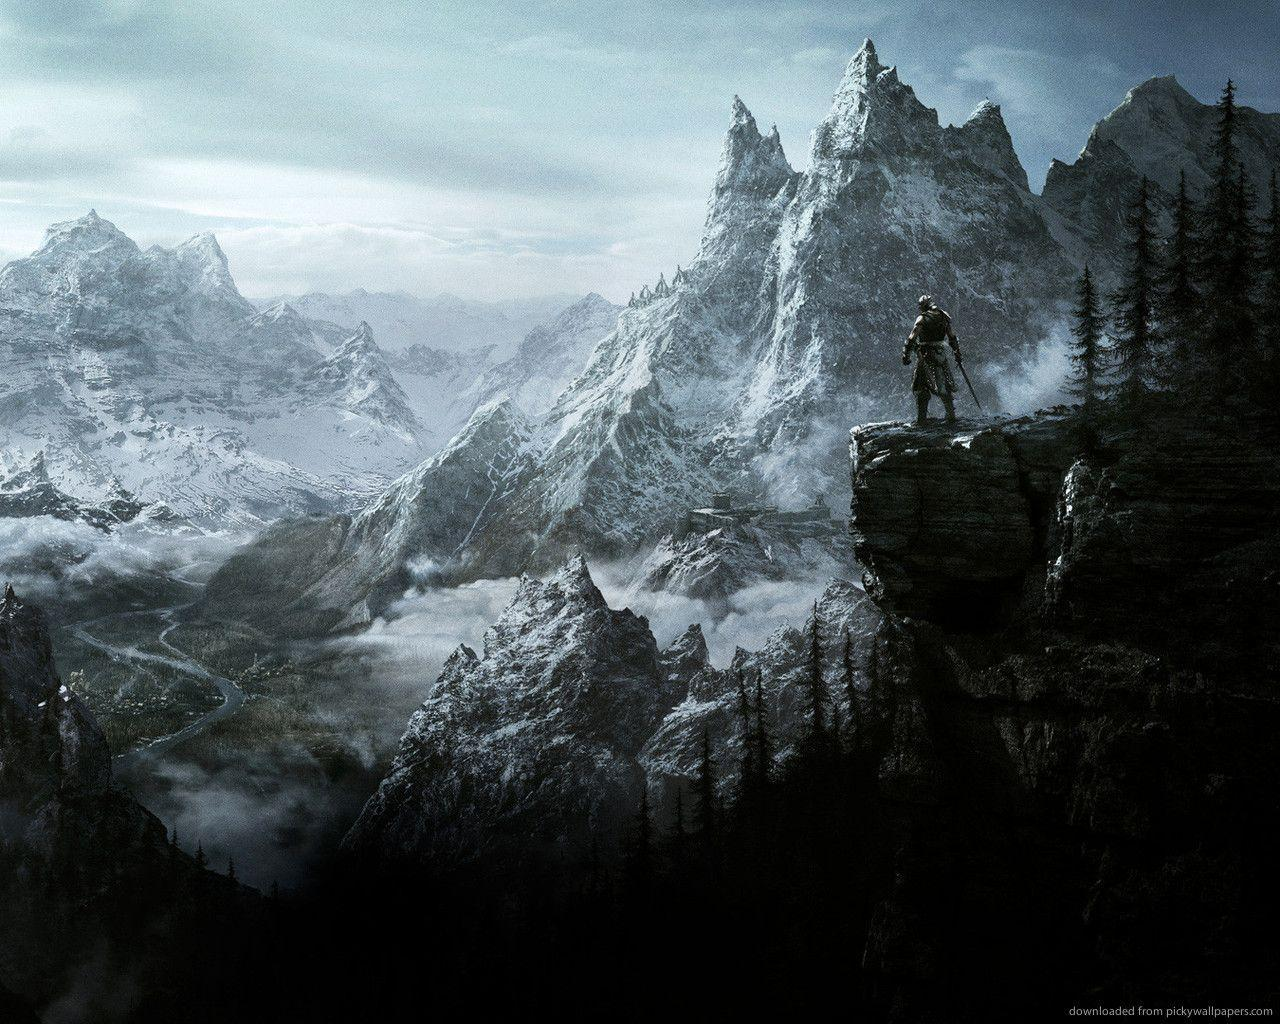 Skyrim Wallpapers 1280x1024 - Wallpaper Cave